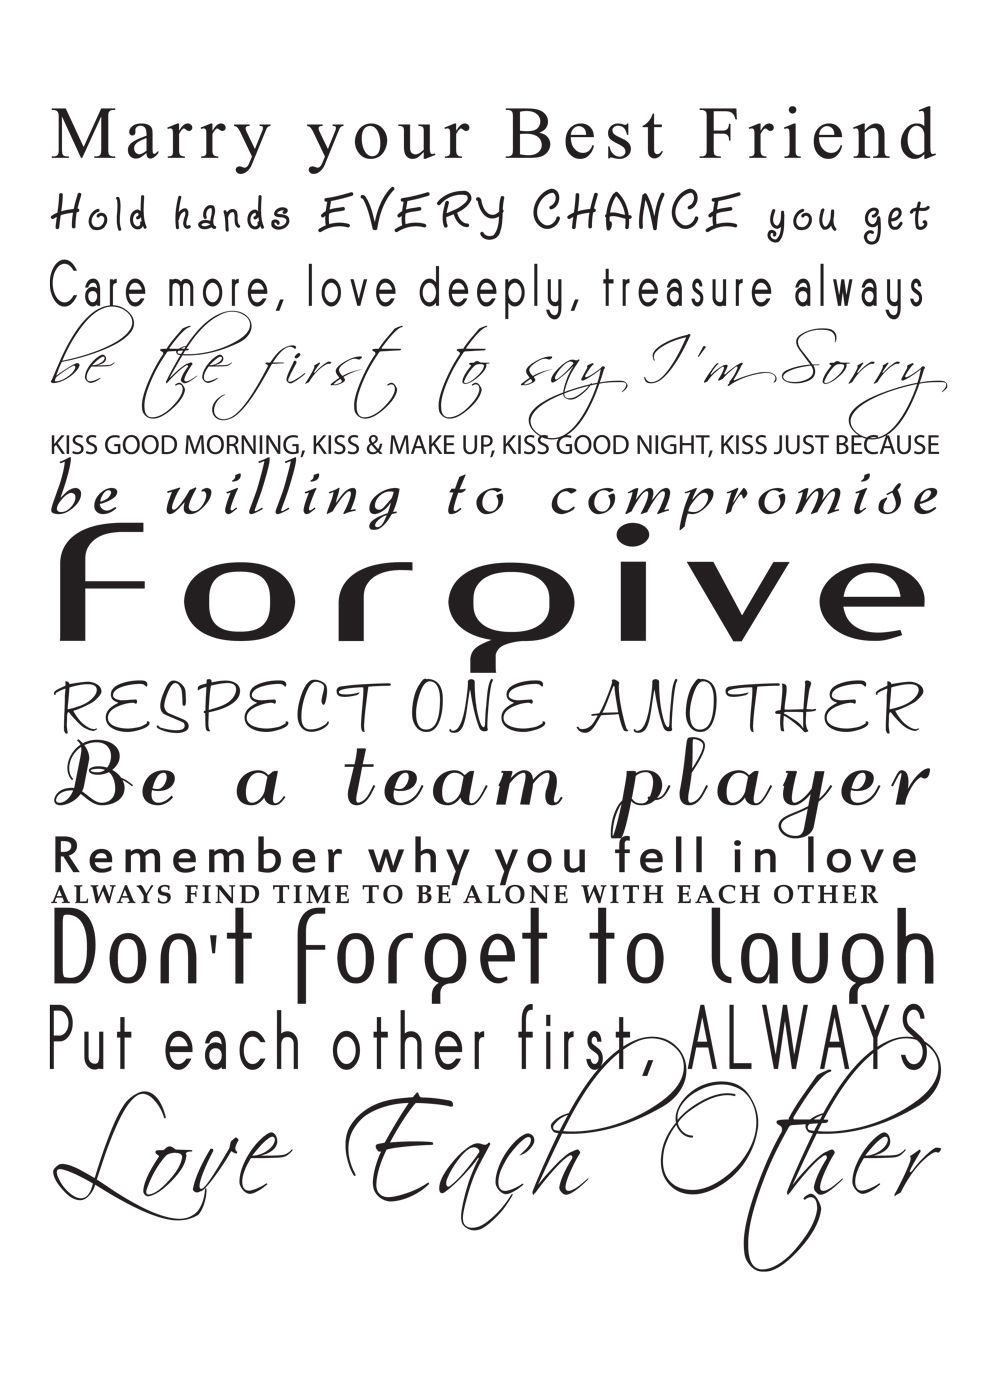 Removable Surface Art Marry Your Best Friend Husband Quotes Words Marry Your Best Friend